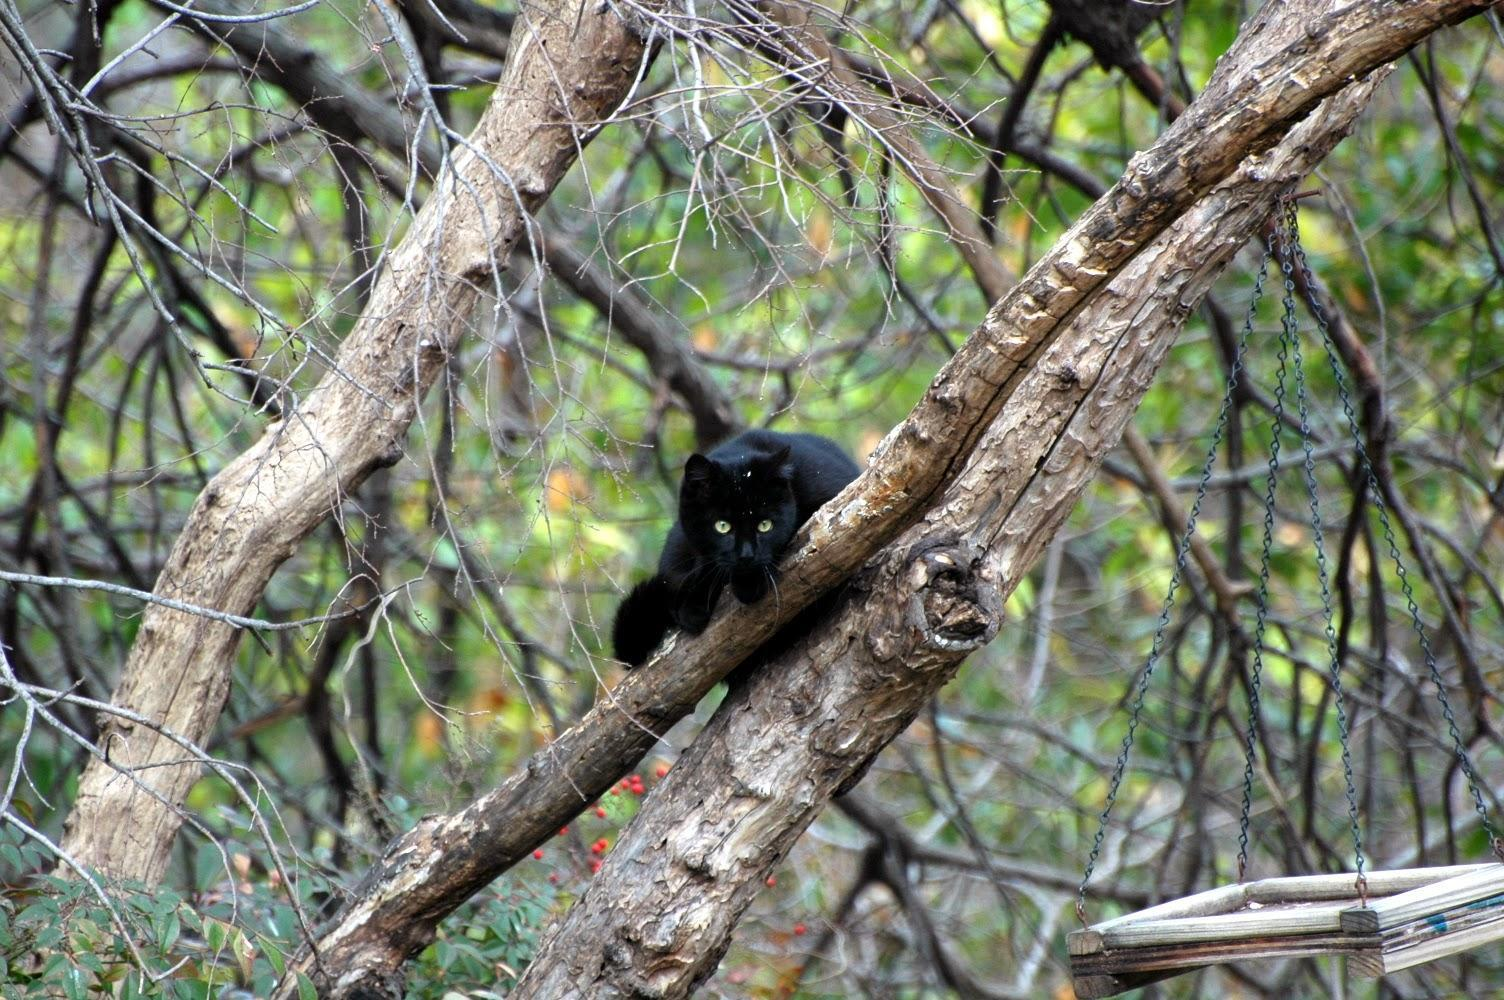 What do you do all day in your Clan?